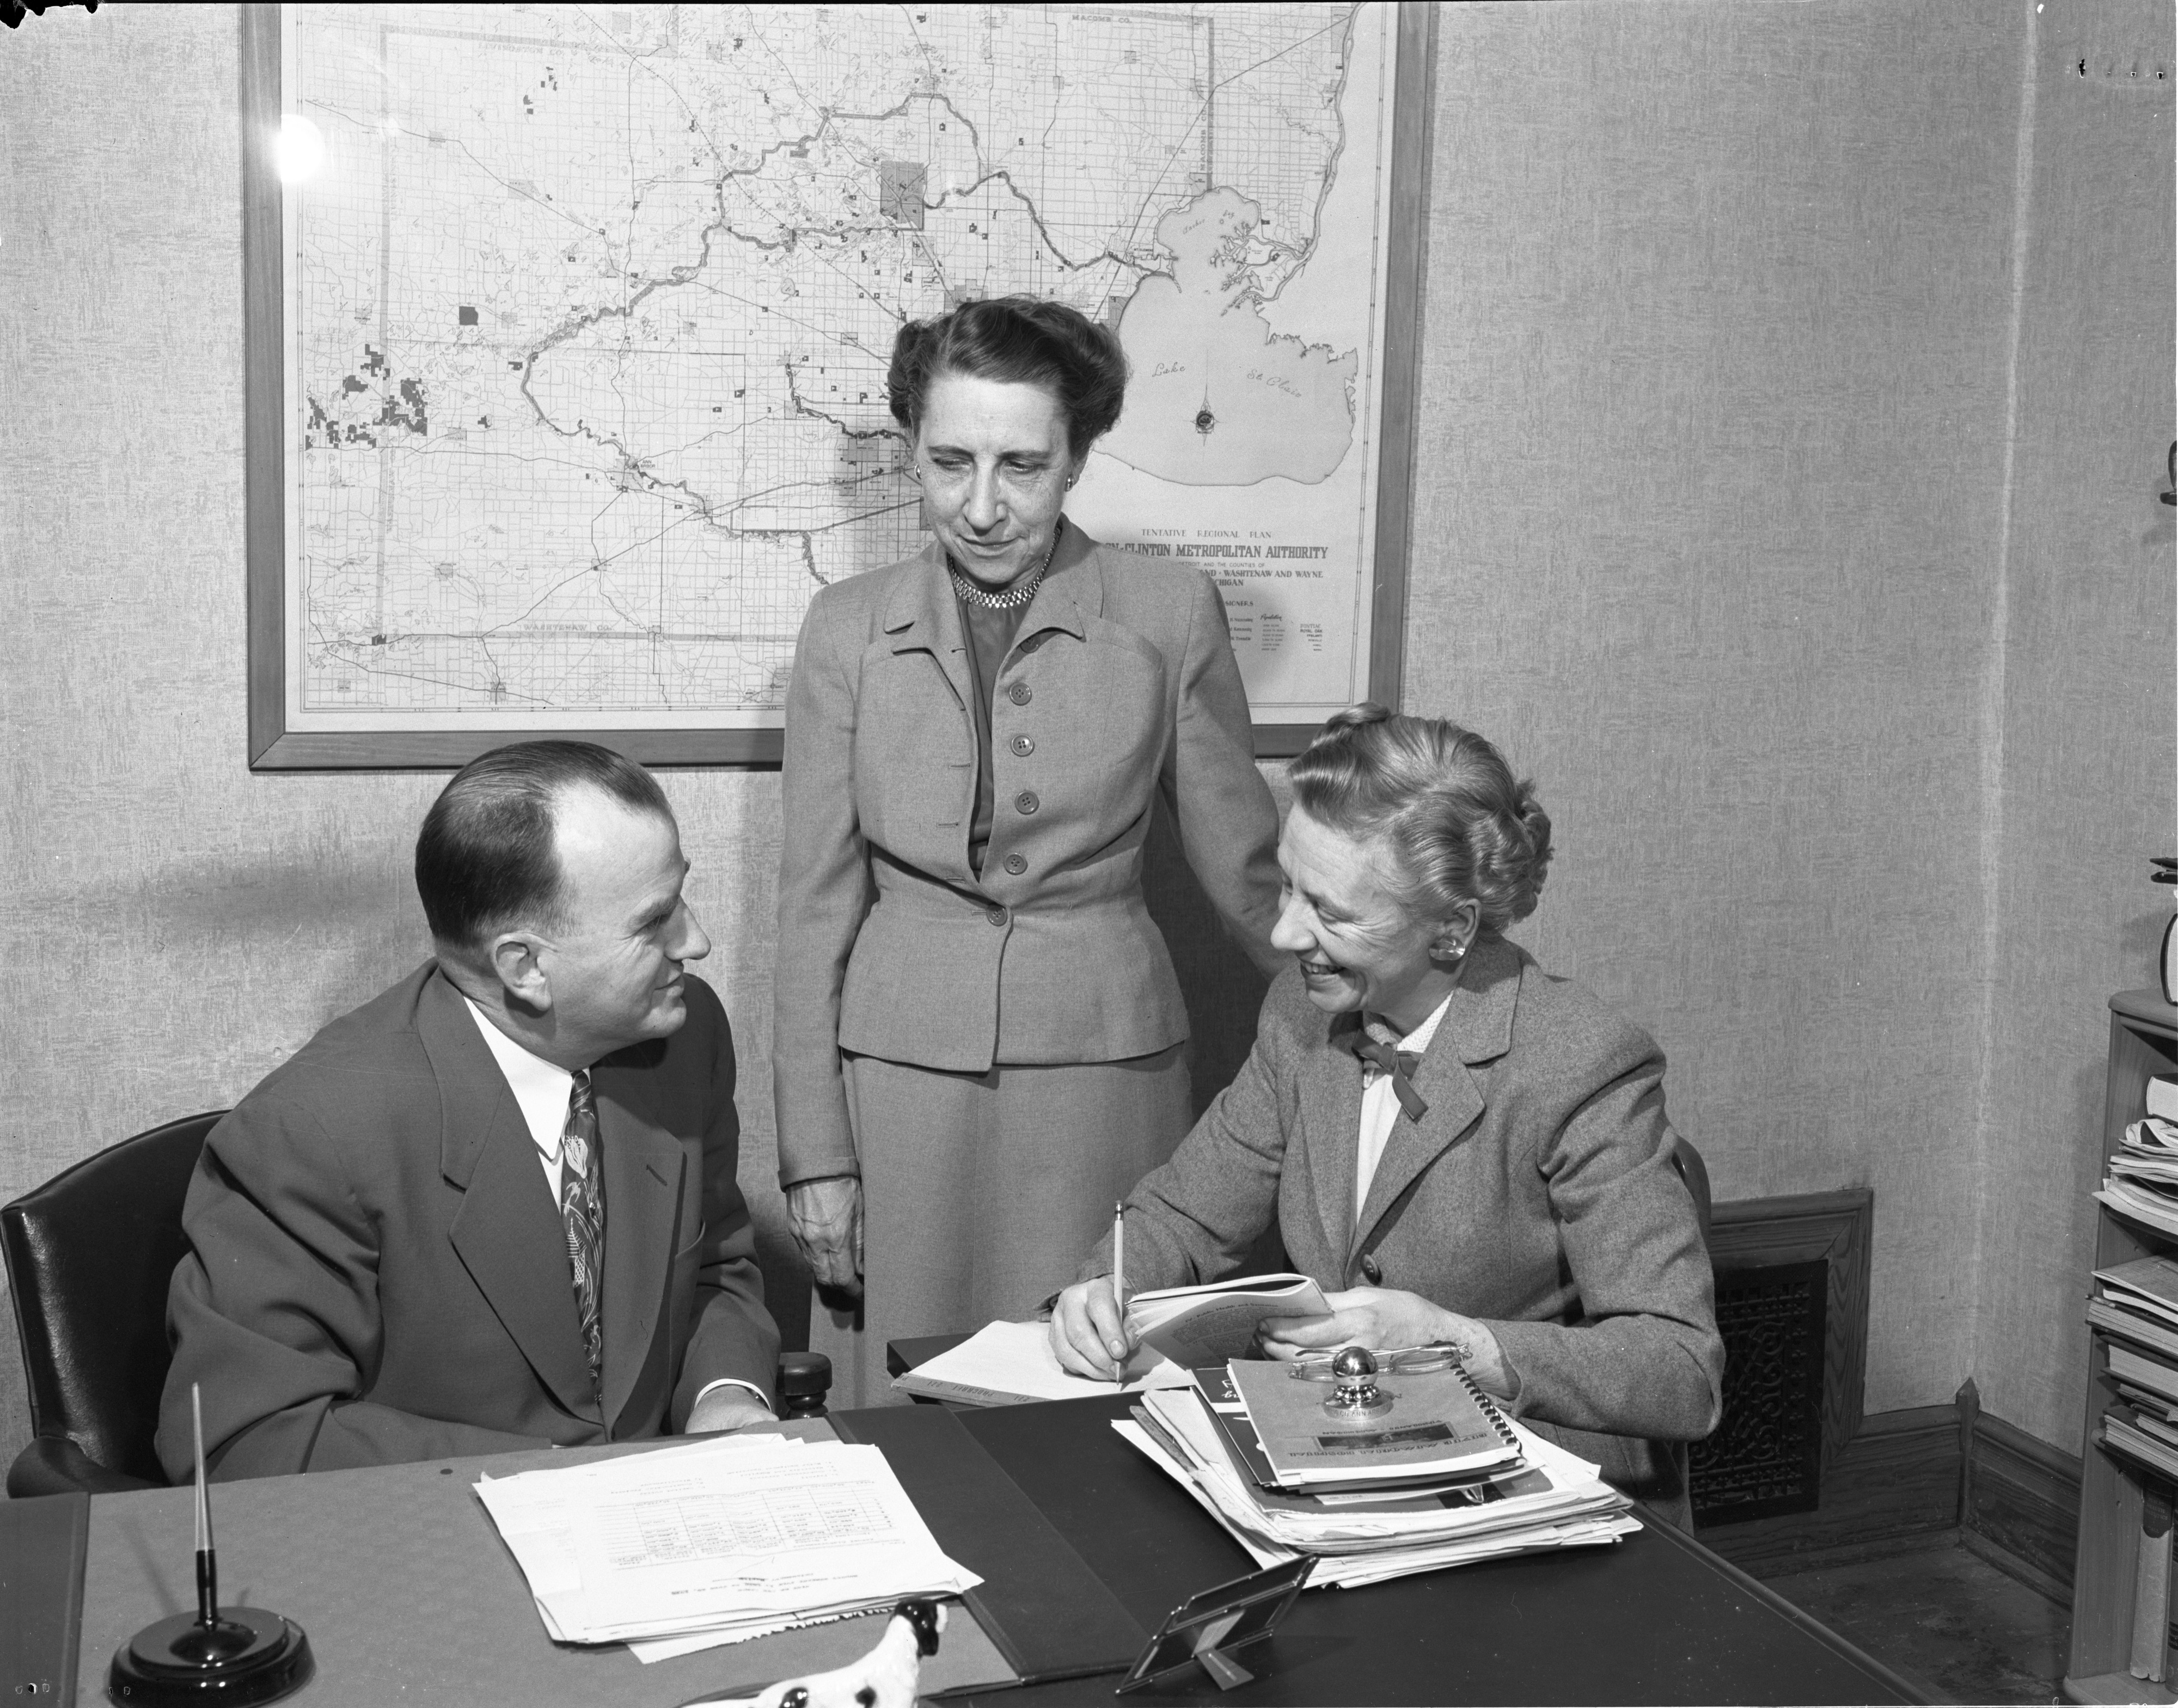 League Of Women Voters Members Interview Dr. Otto K. Engelke, May 1952 image